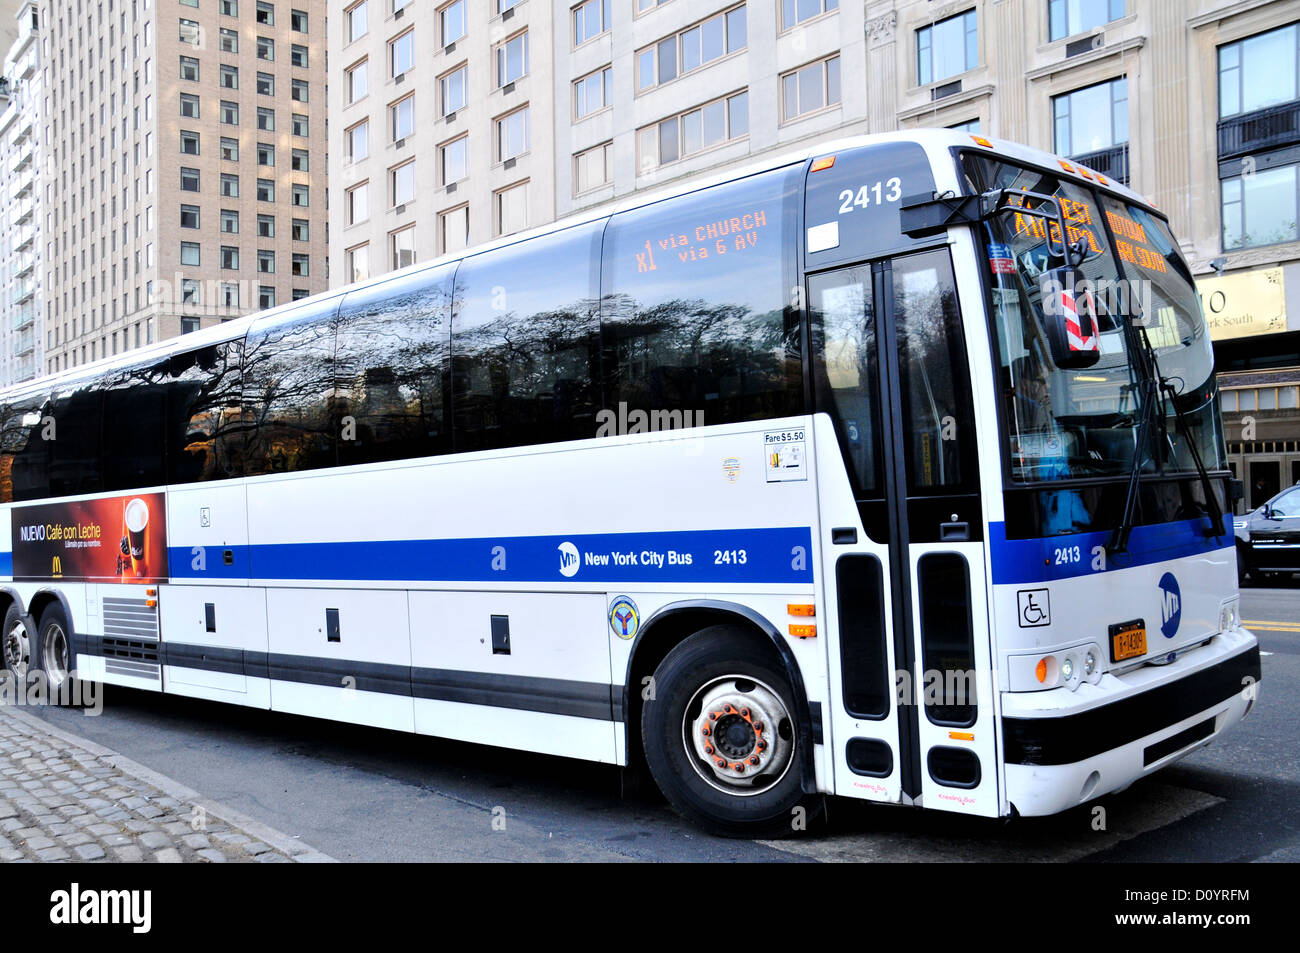 Dating coaches new york city